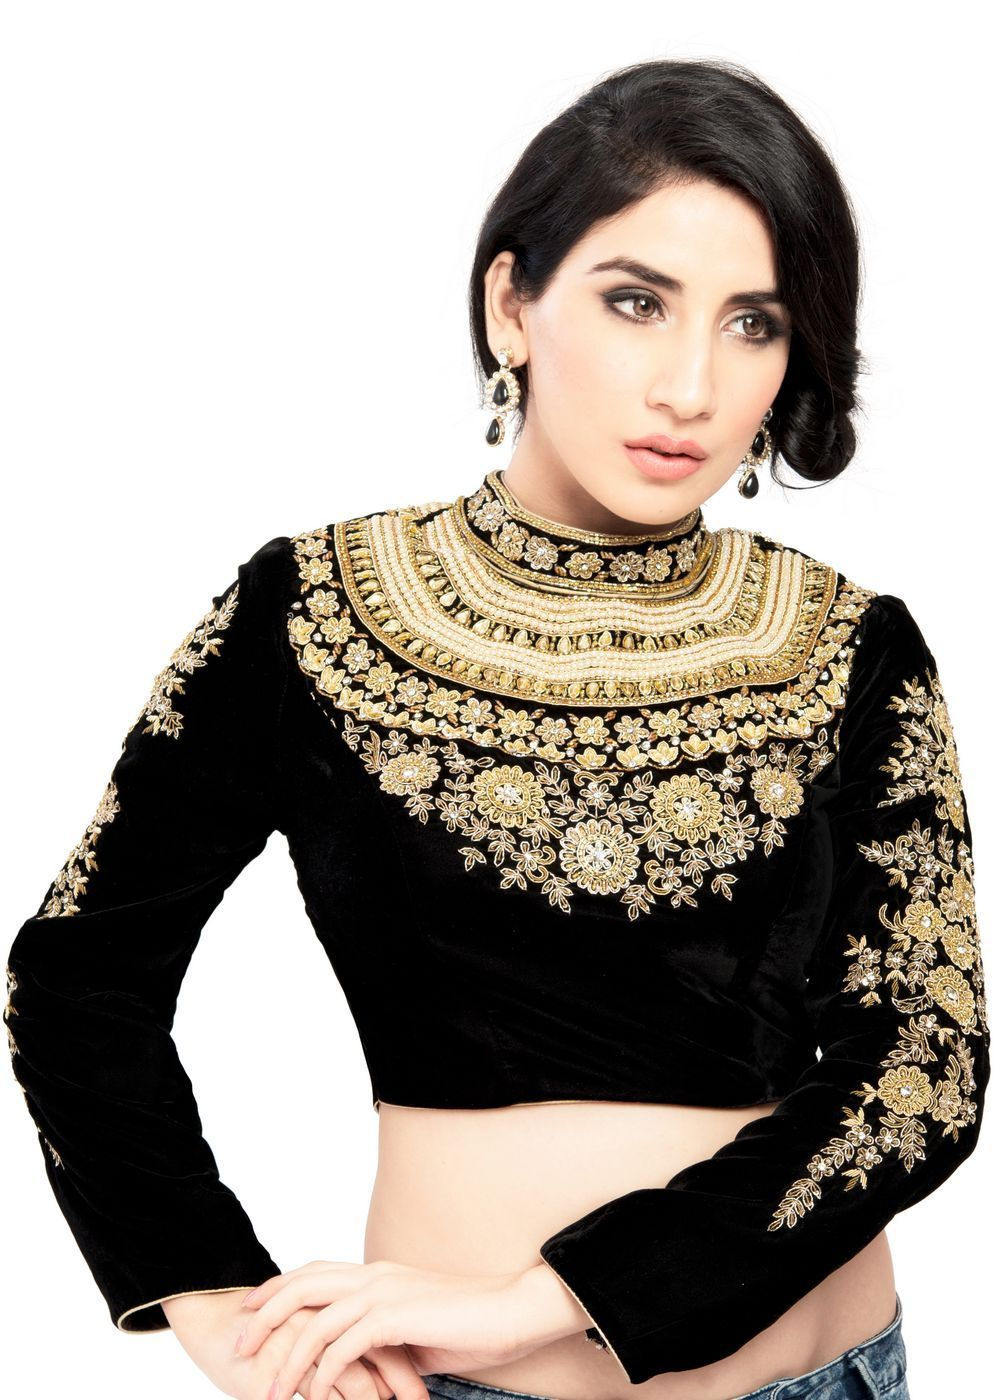 0d0e8e665915c9 Maharana Full Sleeve Black Velvet Saree Blouse Sari Choli Crop Top - KP-72